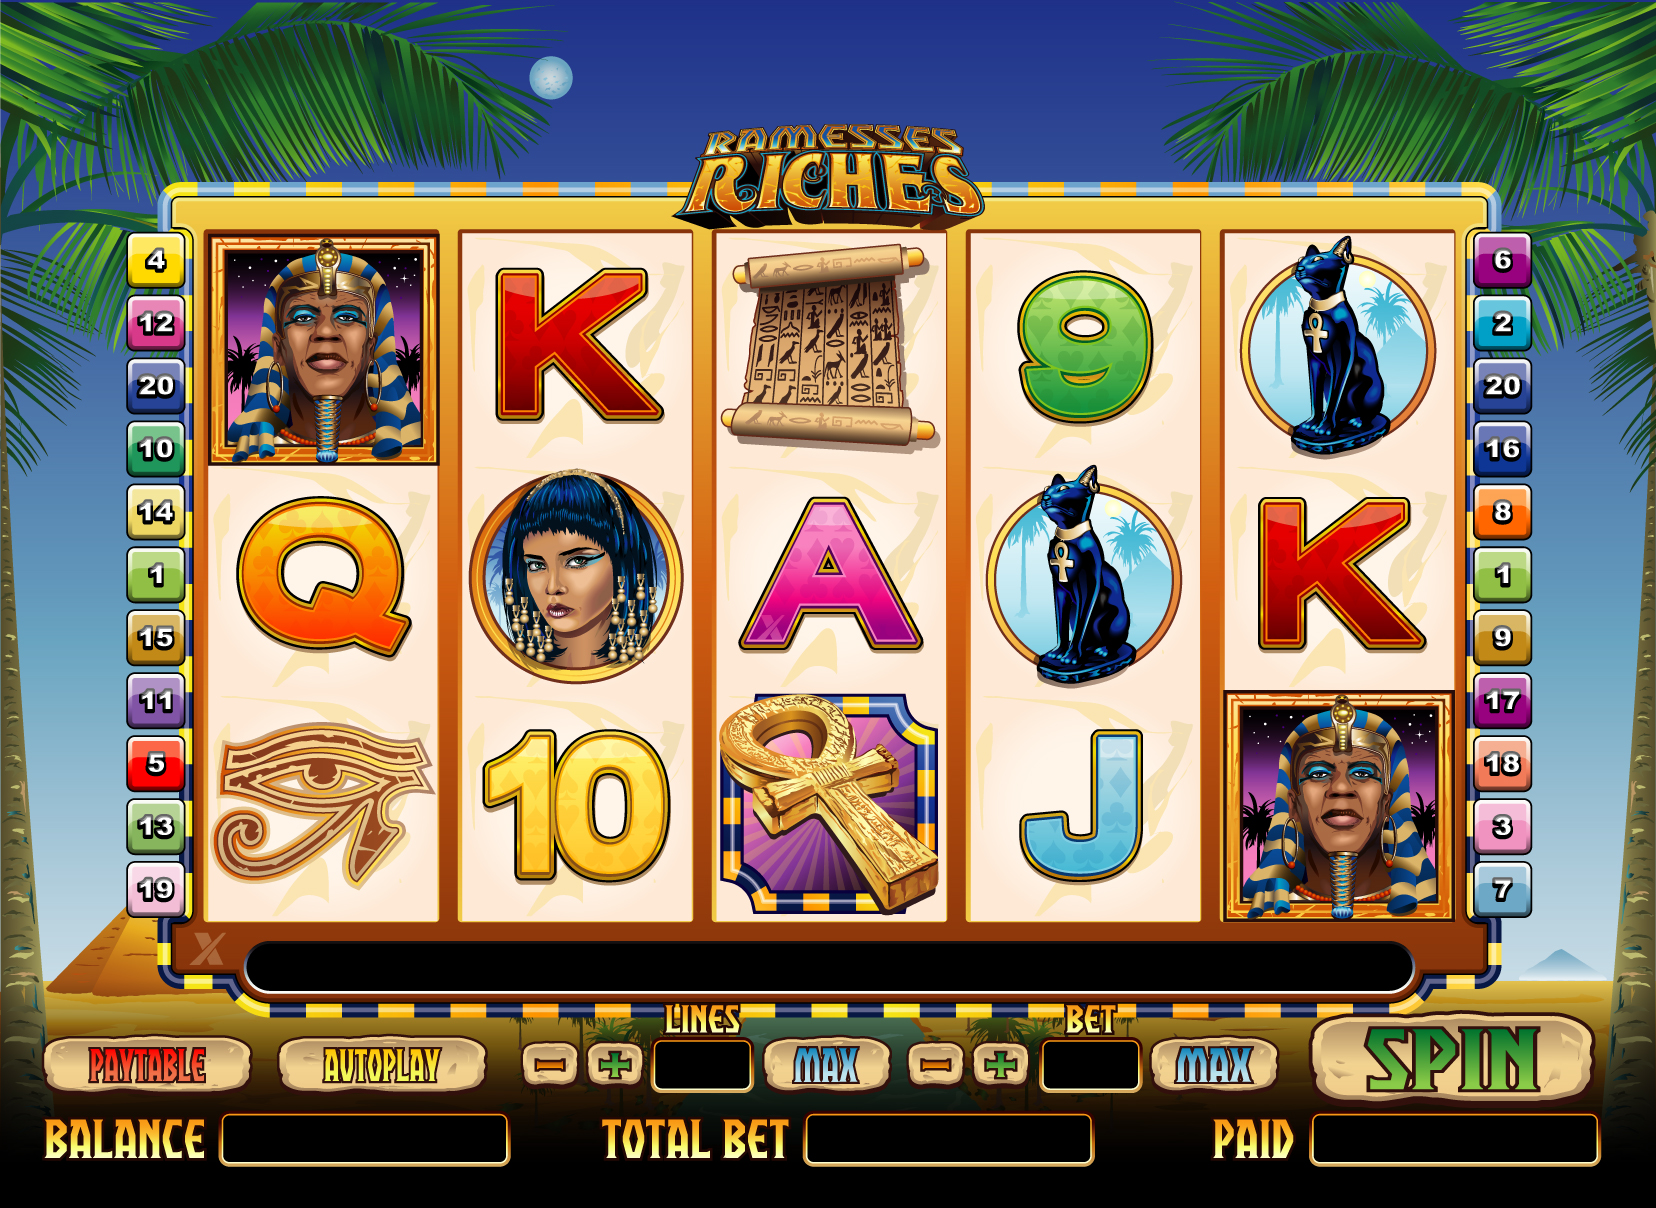 Ramesses Riches casino